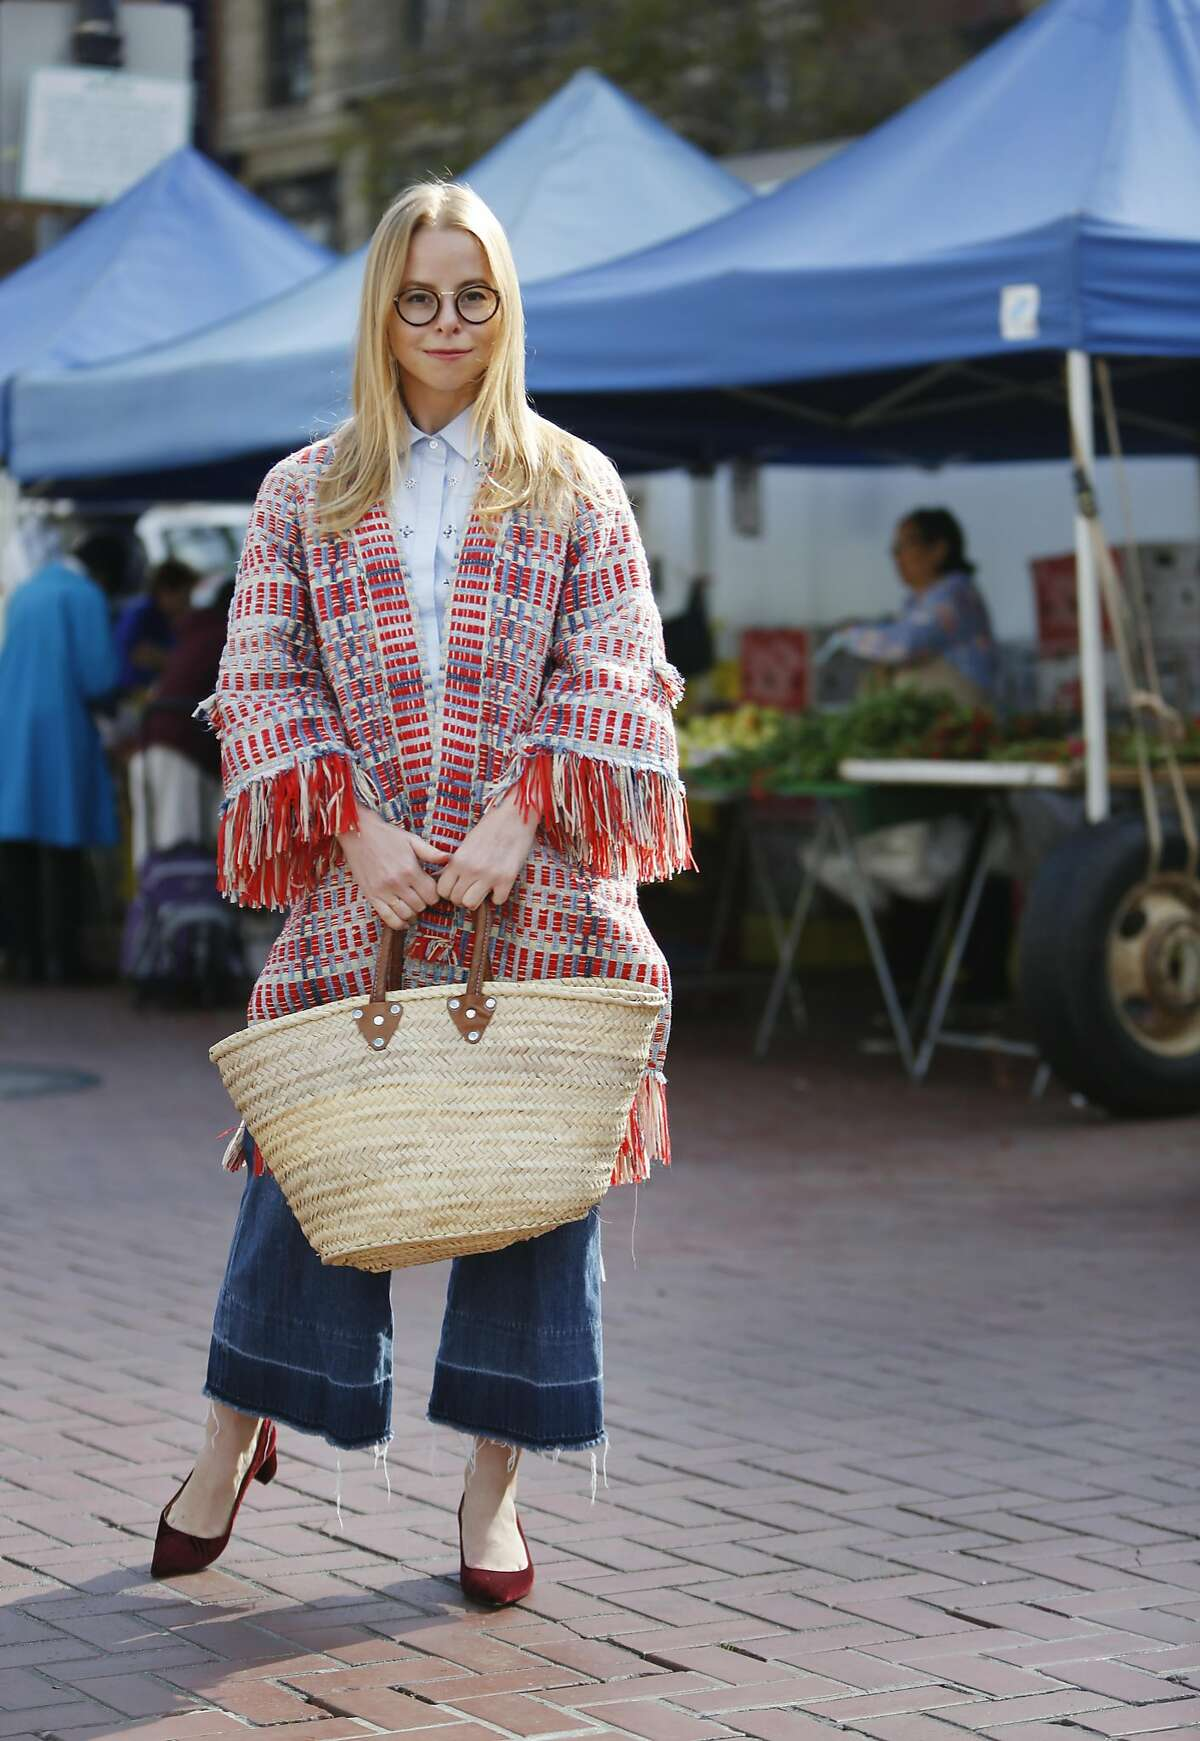 Fashion illustrator Gretchen Roehrs, stands for a portrait at the Heart of the City Farmers' Market at United Nations Plaza Wednesday, September 14, 2016 in San Francisco, California.